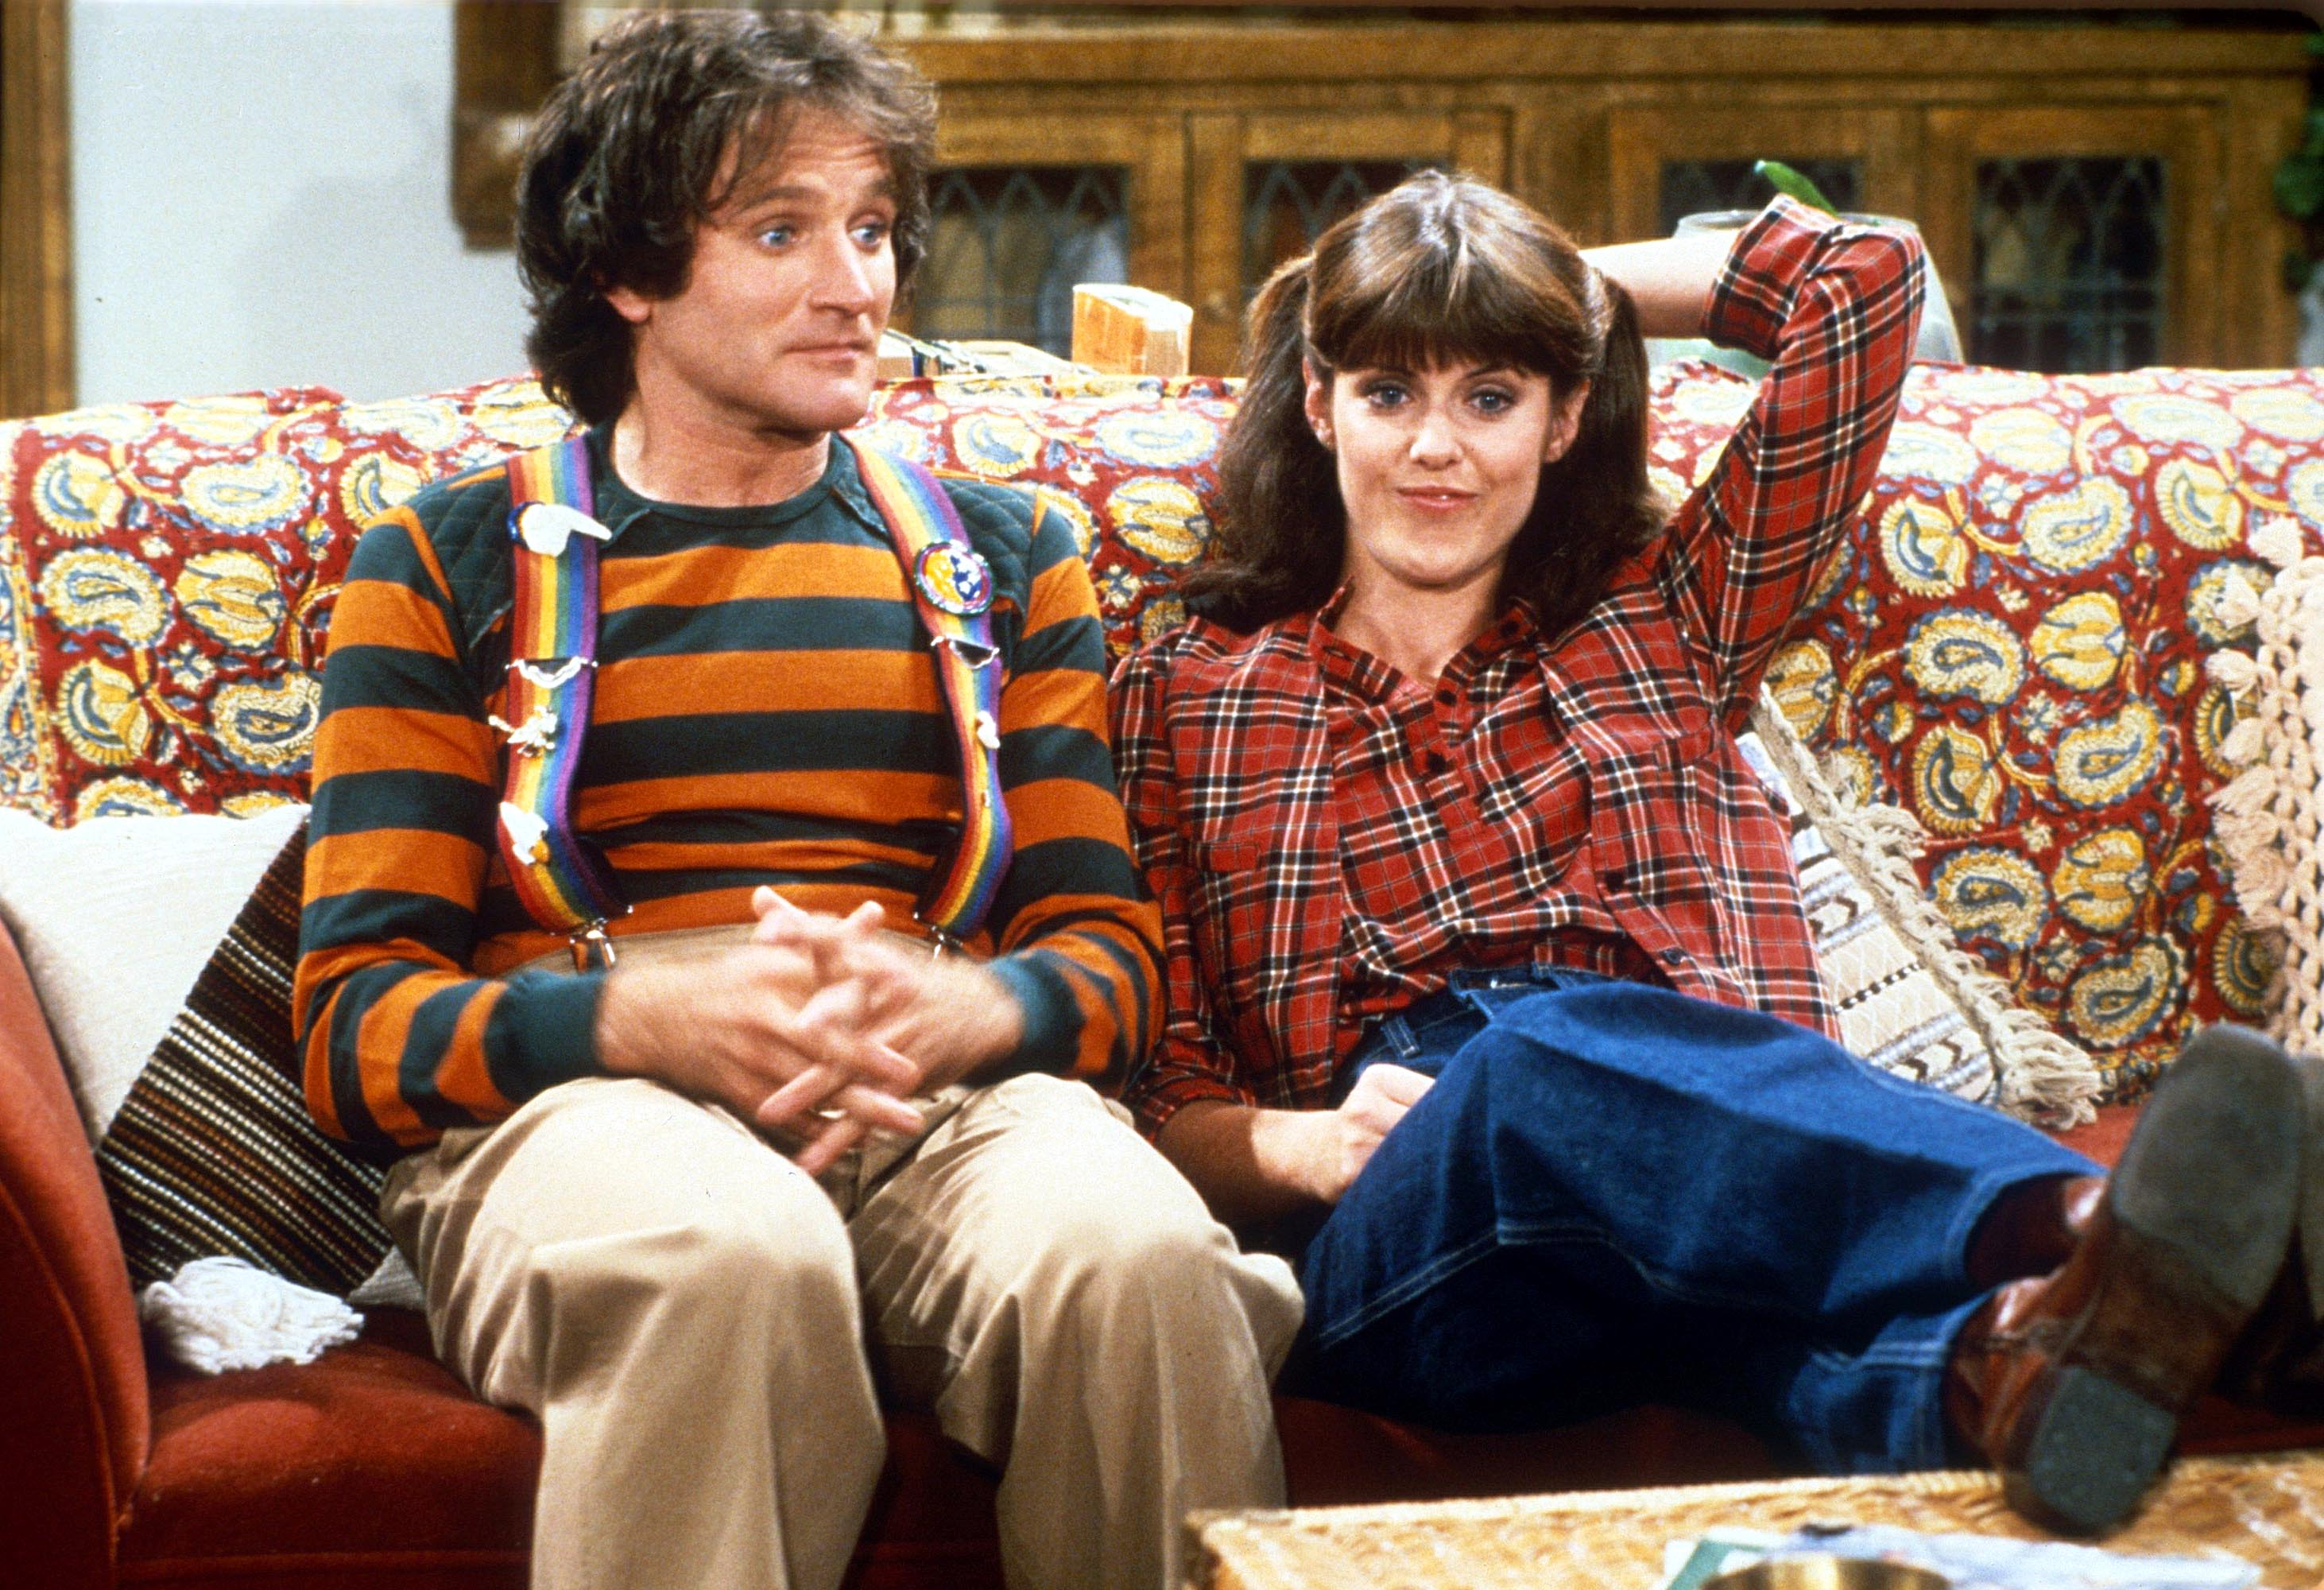 ROBIN WILLIAMS E PAM DAWBER IN 'MORK E MINDY' TVVARIOUS - 1979'MORK AND MINDY' TVVARIOUS - 1979